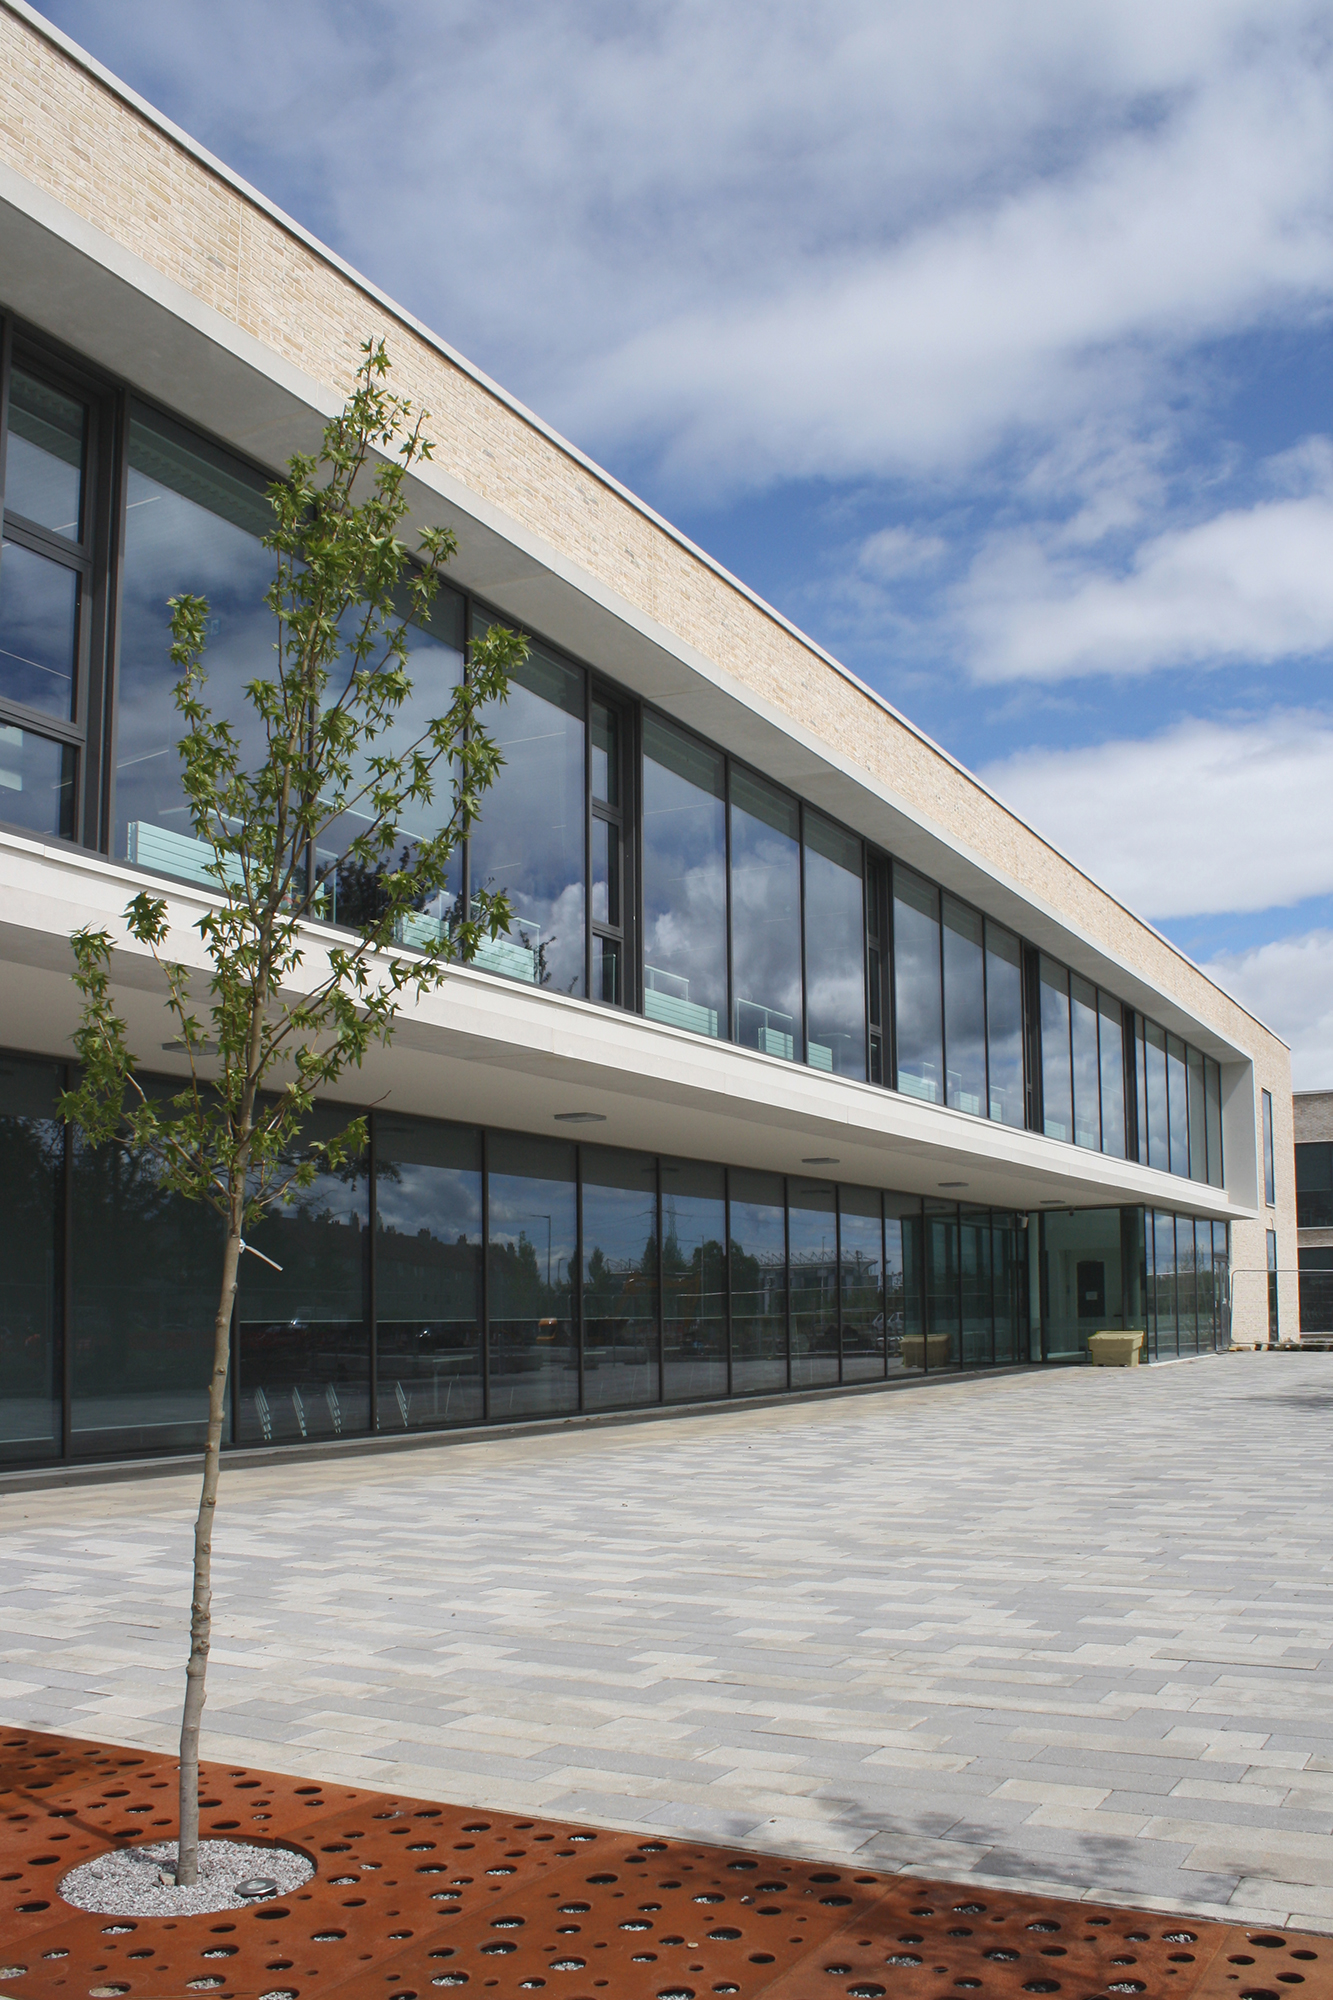 Forth Valley College Falkirk